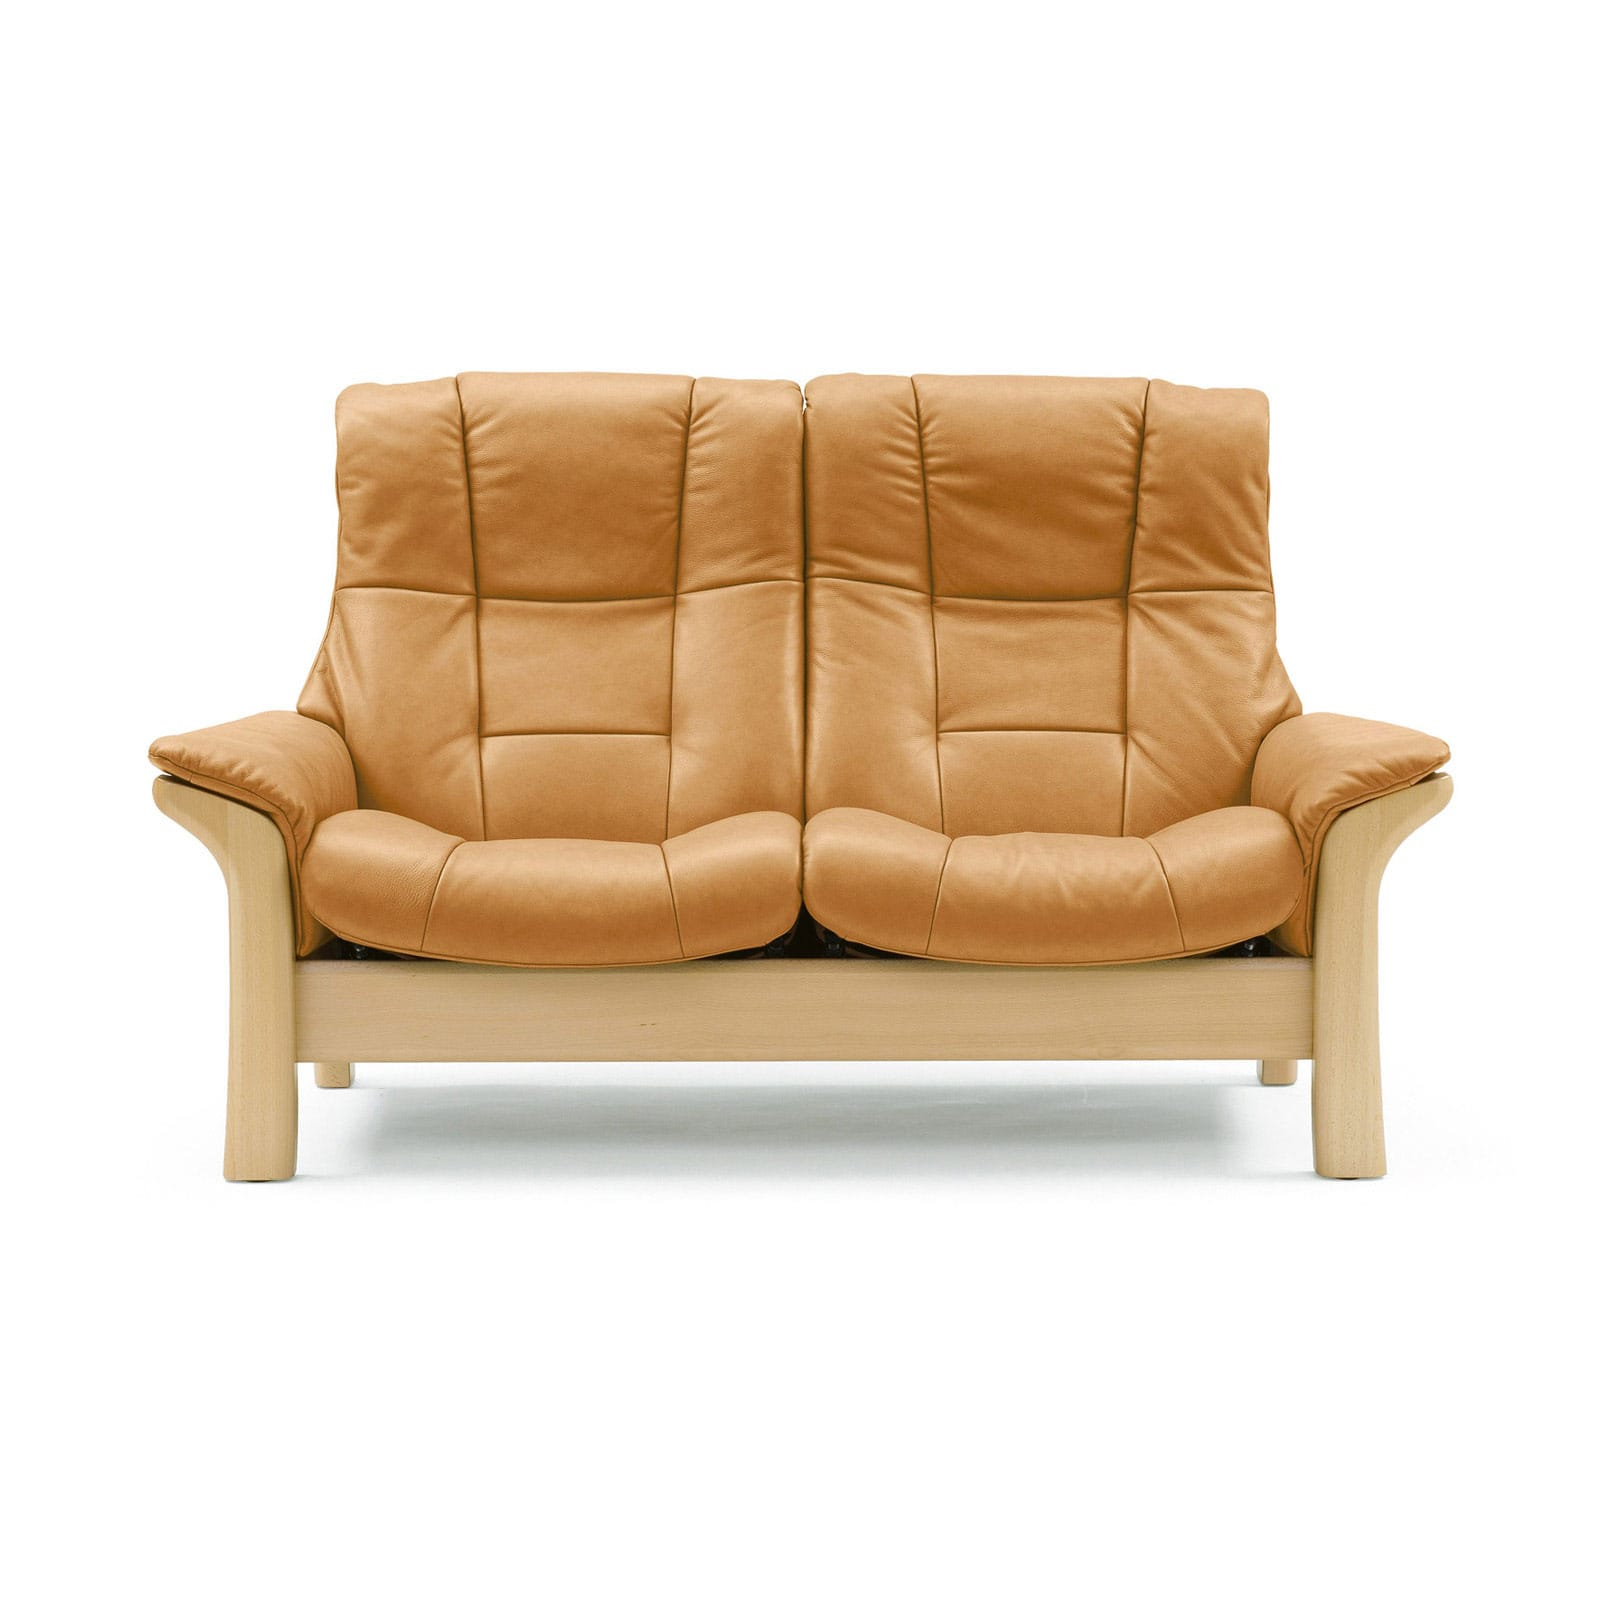 Stressless Sofa 2 Sitzer Buckingham L Hoch Tan Natur